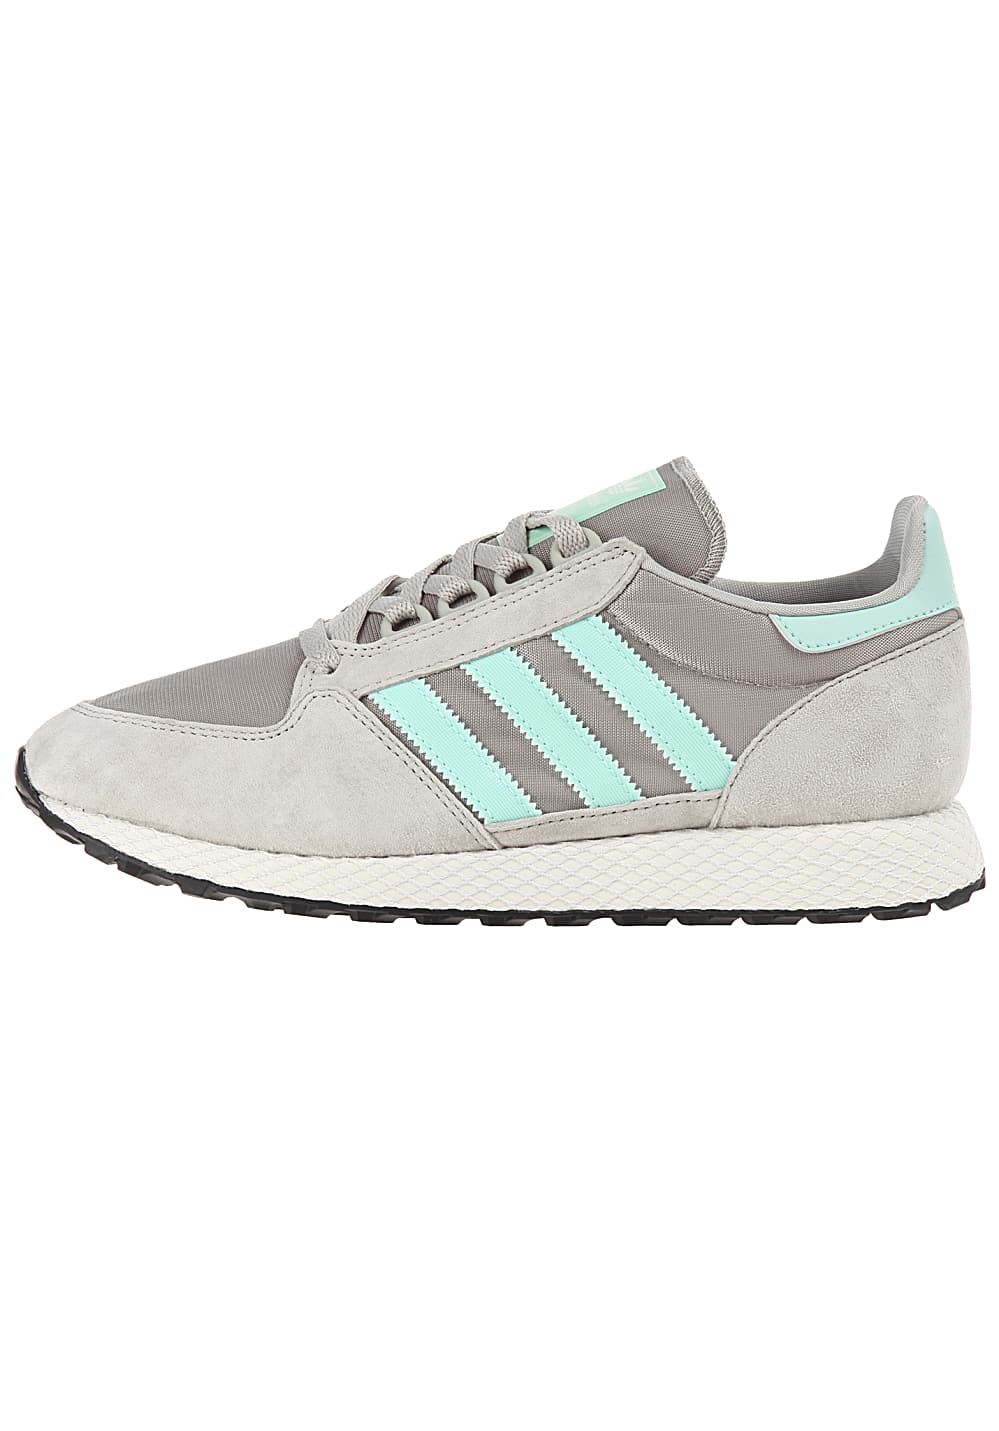 competitive price d2d68 3bb92 ADIDAS ORIGINALS Forest Grove - Zapatillas para Mujeres - Gris - Planet  Sports